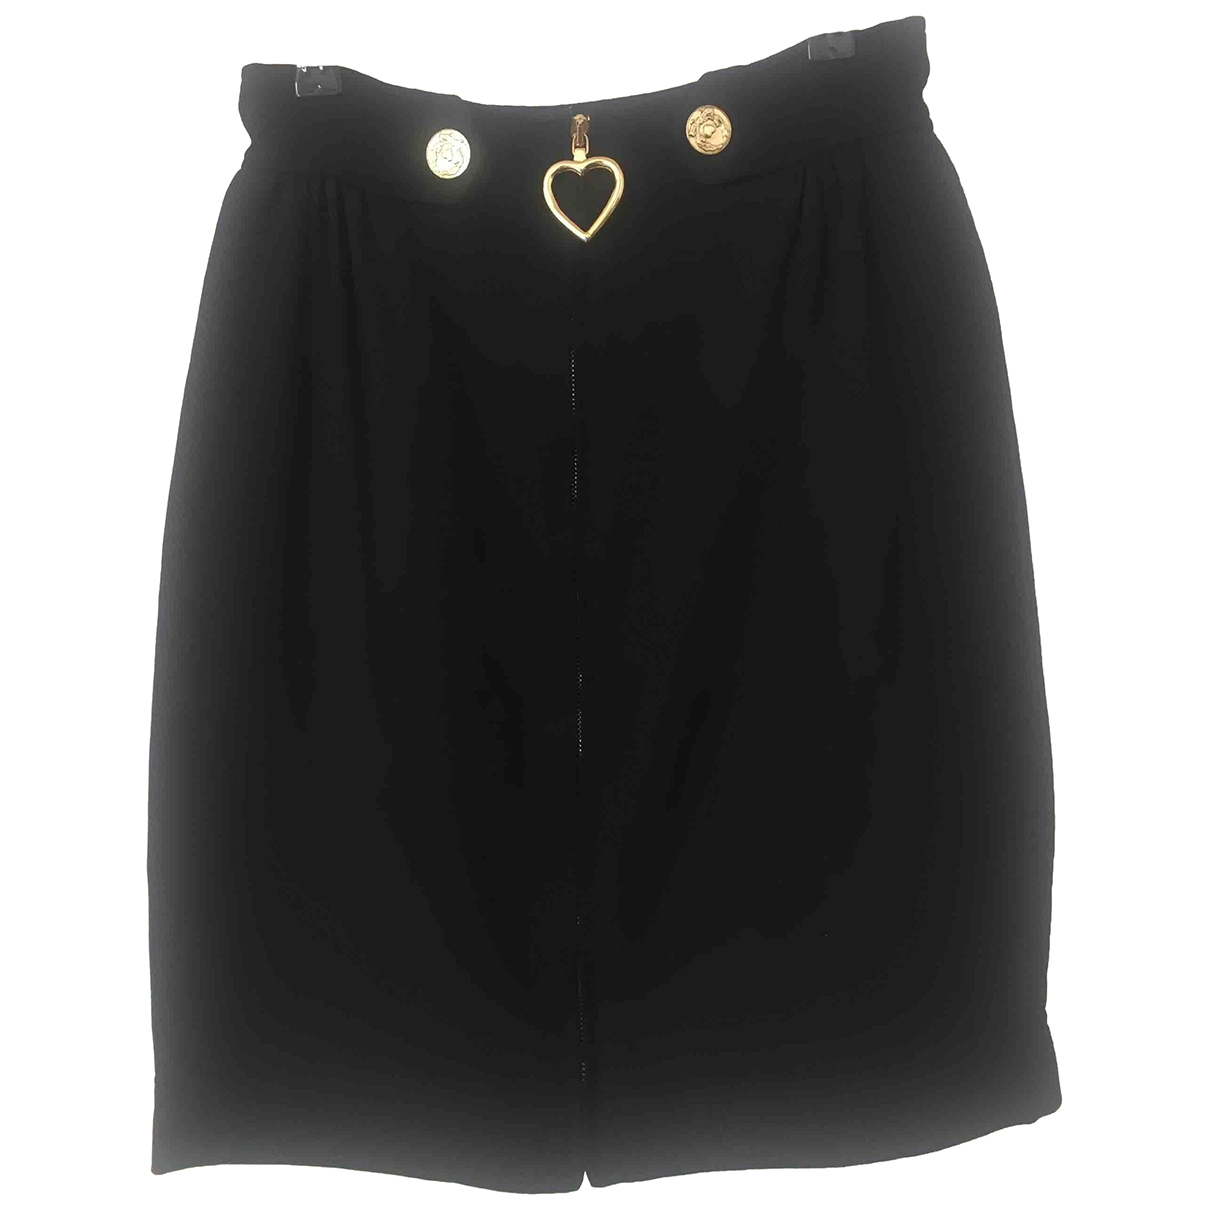 Moschino Cheap And Chic \N Black Wool skirt for Women 36 FR